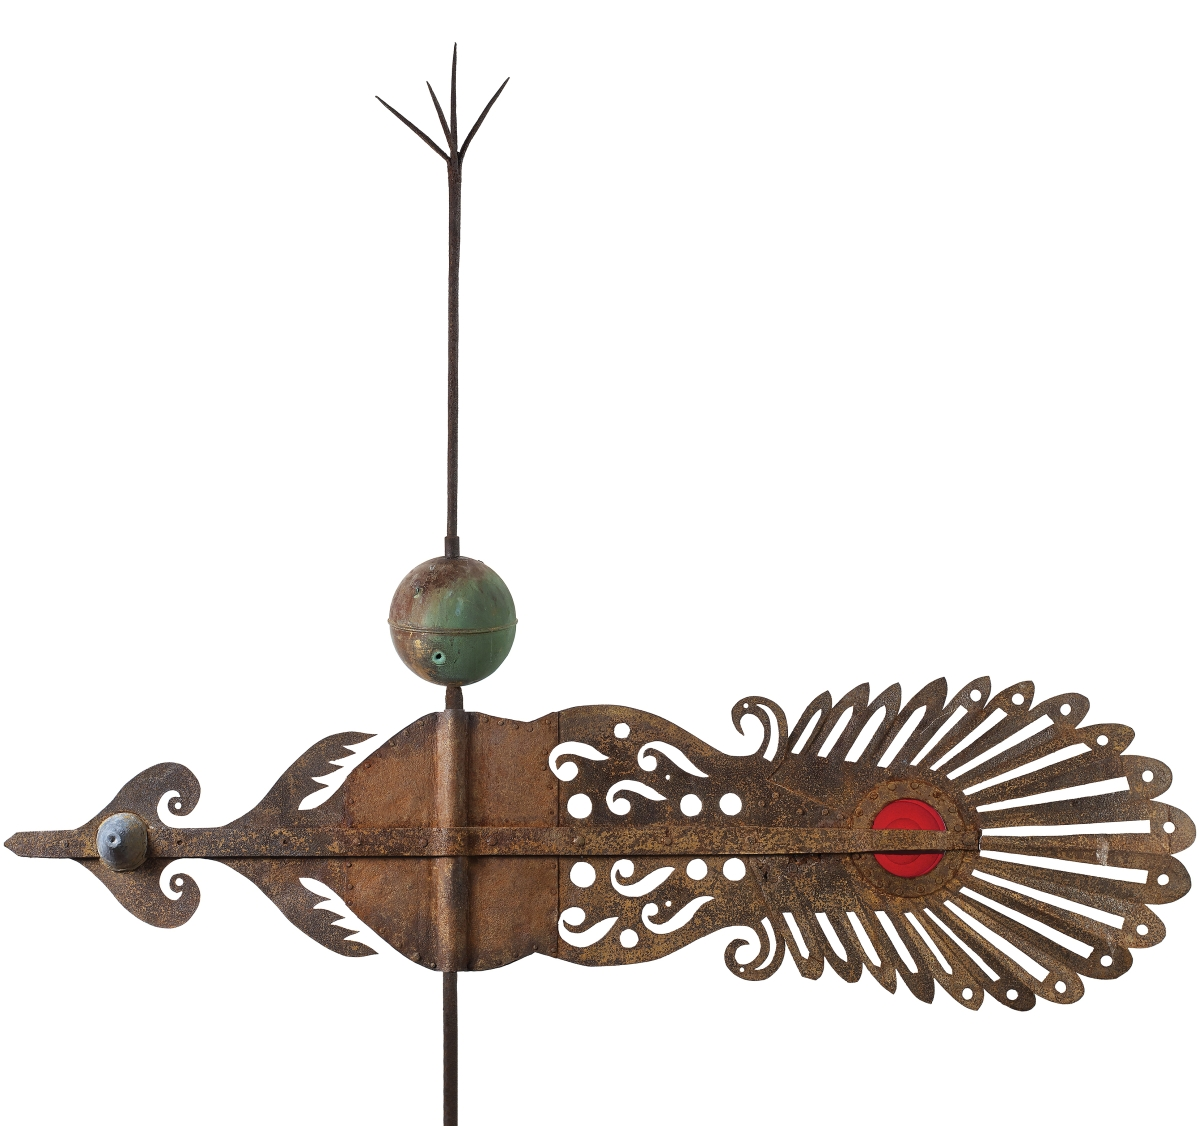 Church banner by unidentified artist, Orono, Maine, circa 1840. Sheet iron, lead, copper and blown glass with remnants of an early gilded surface, 61 by 74¼ inches. Private collection; photo Ellen McDermott, courtesy Olde Hope Antiques, Inc.